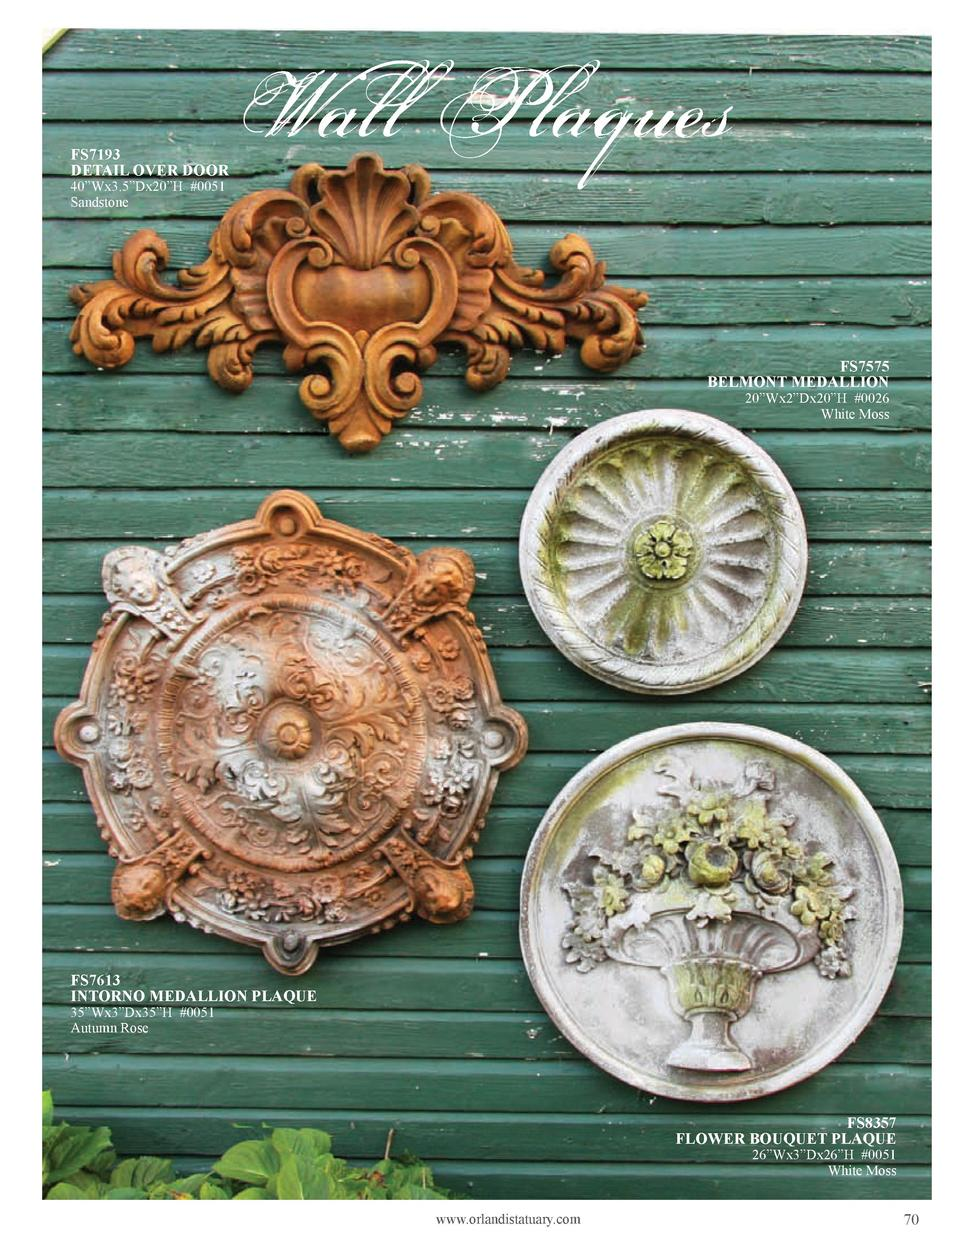 FS7193 DETAIL OVER DOOR 40   Wx3.5   Dx20   H  0051 Sandstone  Wall Plaques FS7575 BELMONT MEDALLION  20   Wx2   Dx20   H ...